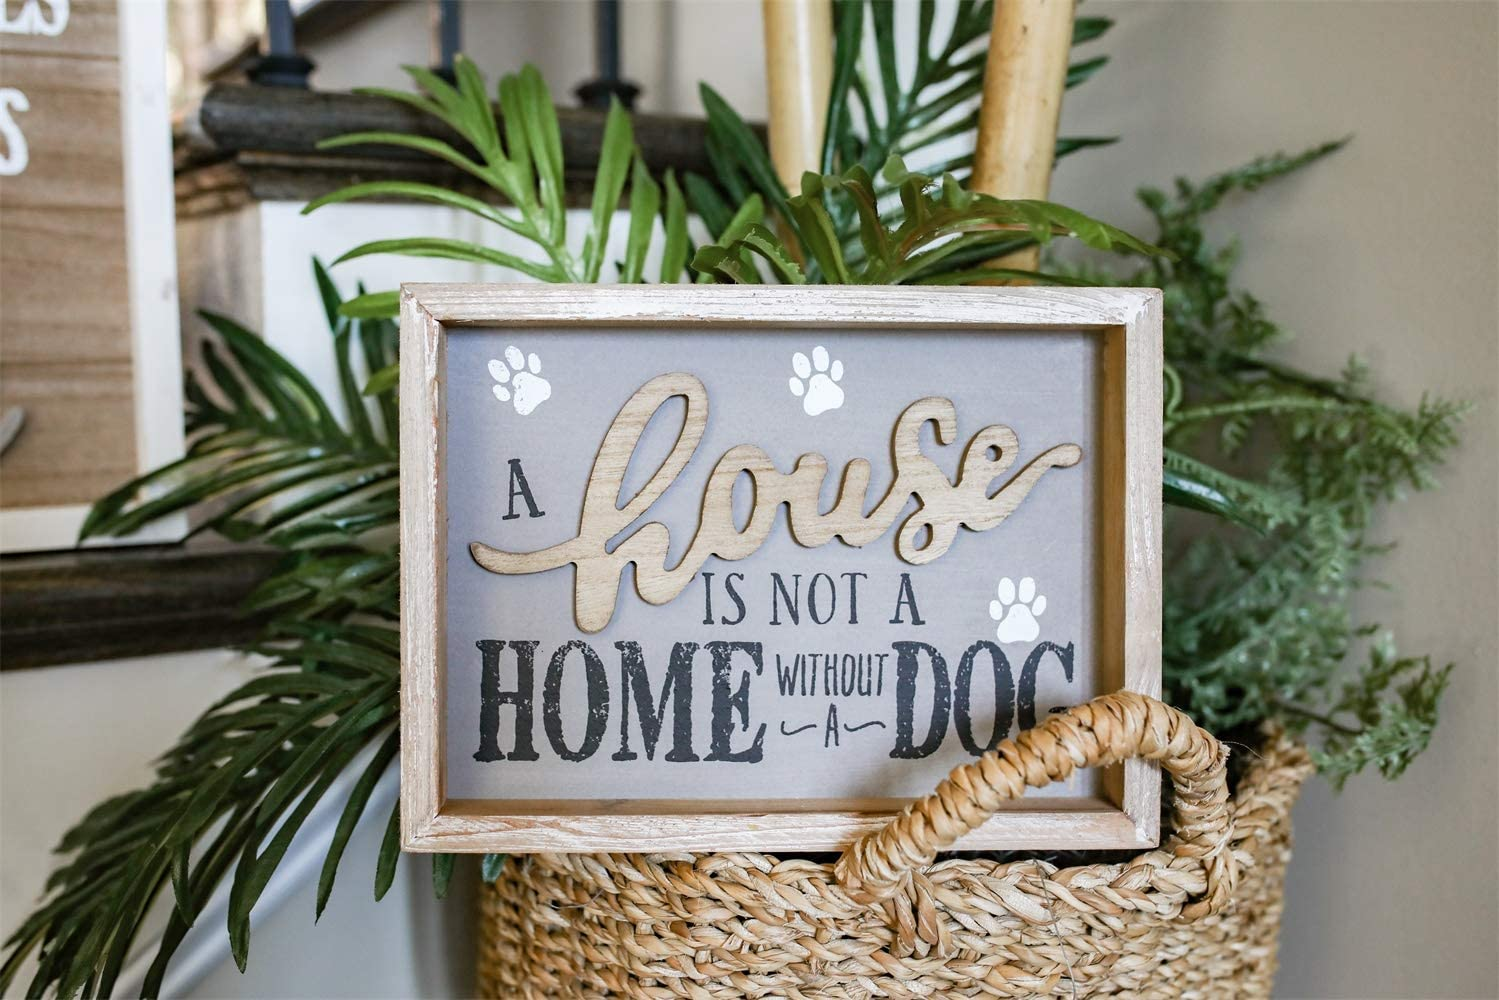 A House is Not A Home Without A Dog Vintage Wooden Frame Wall Sign, Farmhouse Rustic Wood Pet Decor for Dog Lovers, 9.5 x 1.5 x 7 Inches